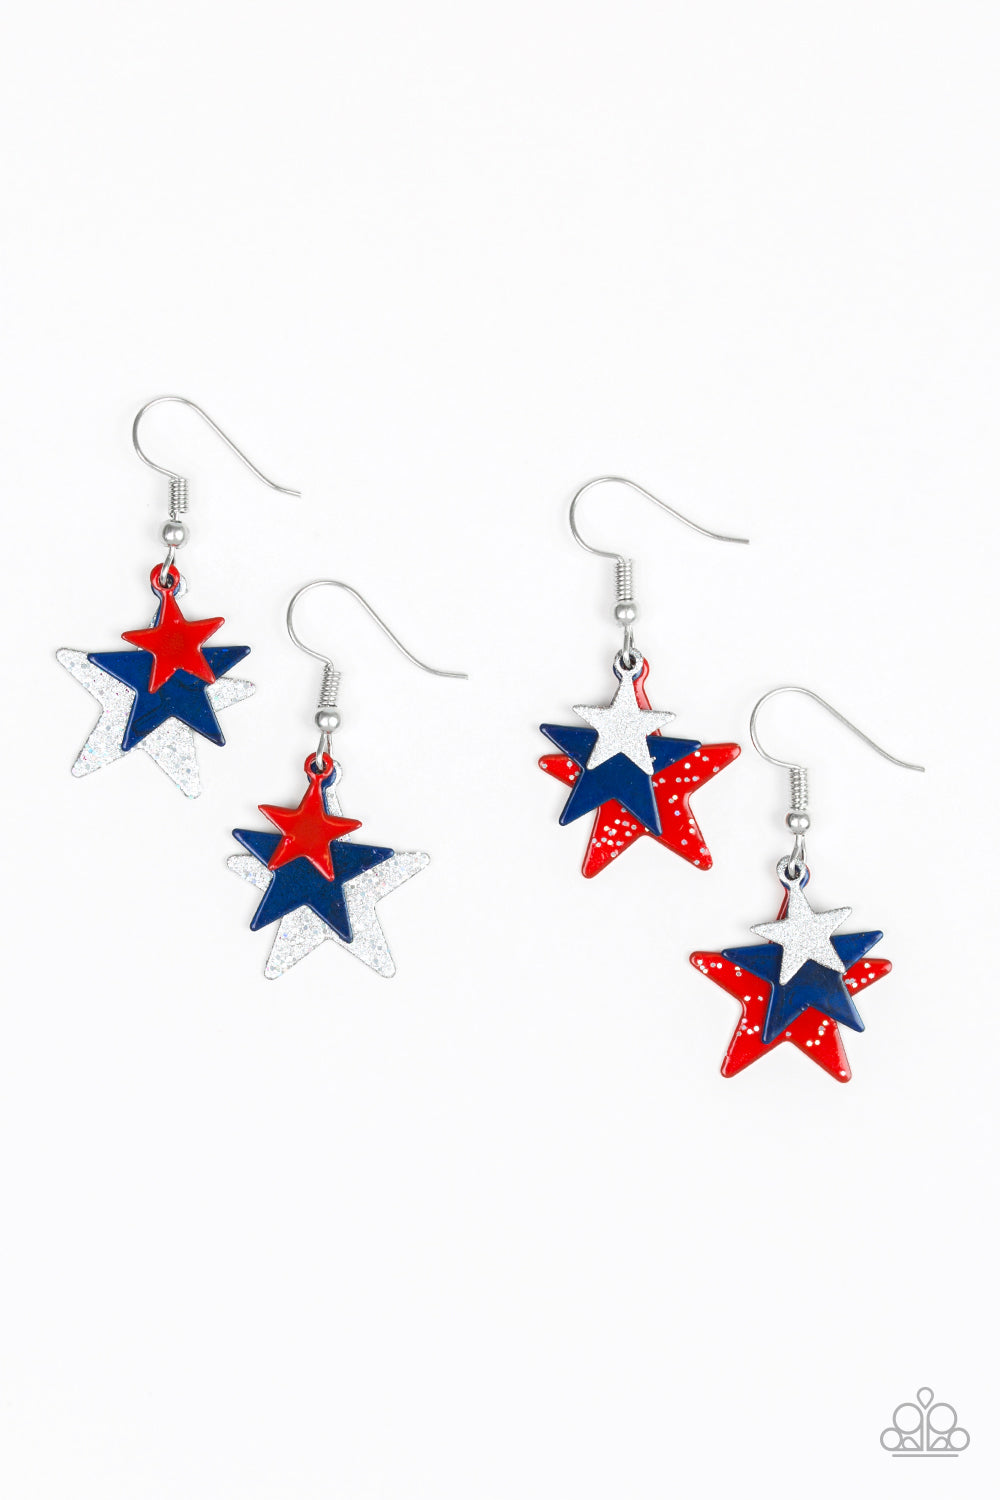 Shooting Star Earrings - Paparazzi Starlet Shimmer - Pink Dragon Jewels